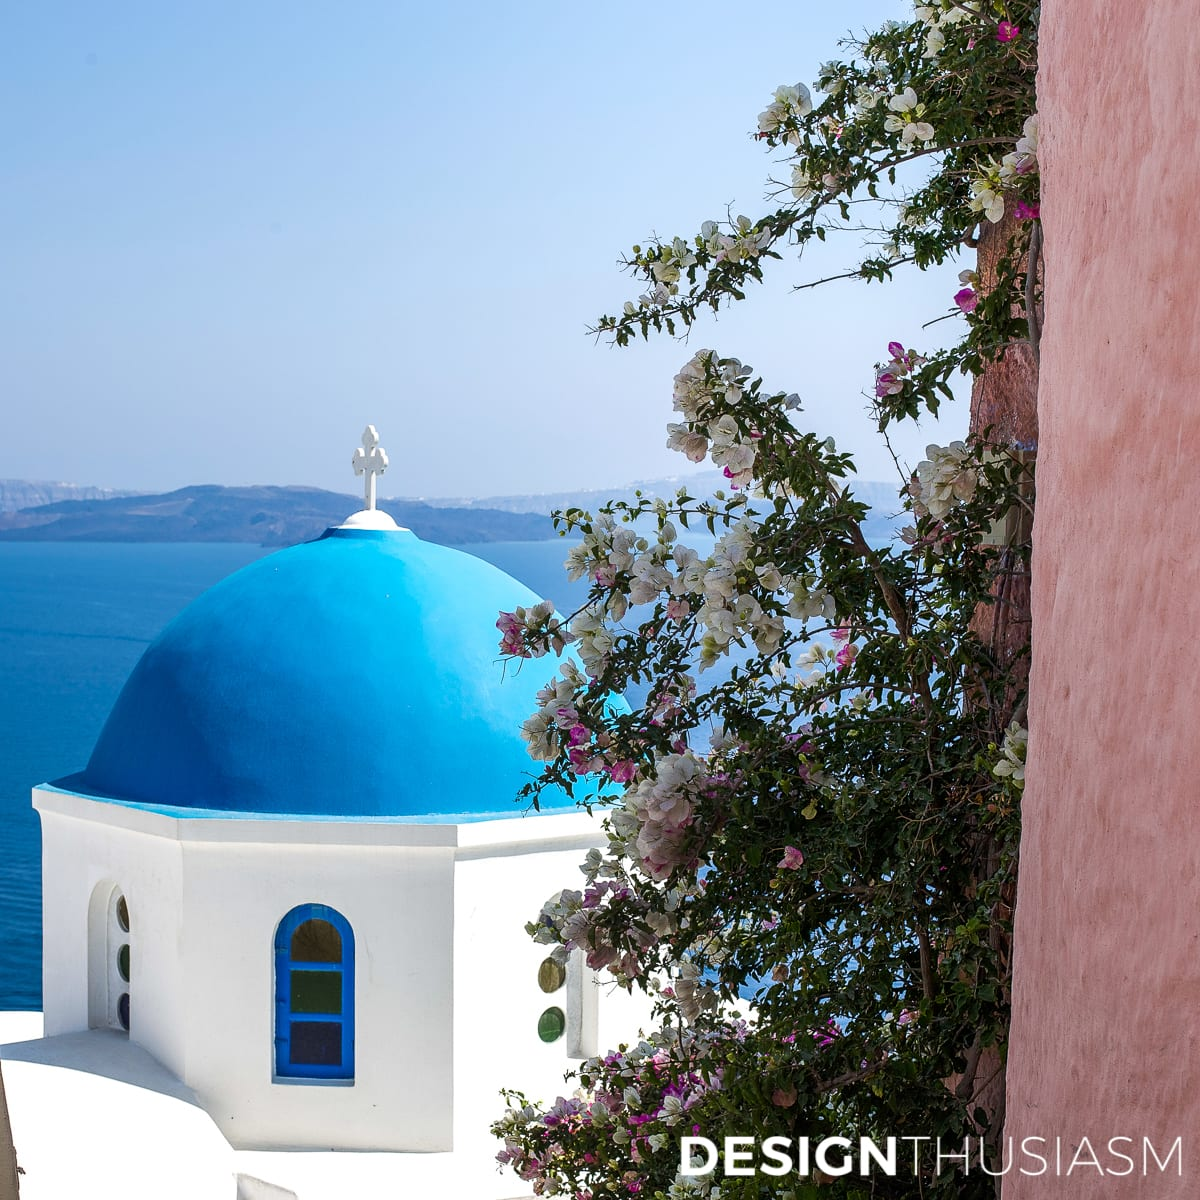 Summer Travel | One of the Most Beautiful Places in the World to Visit | Santorini - designthusiasm.com